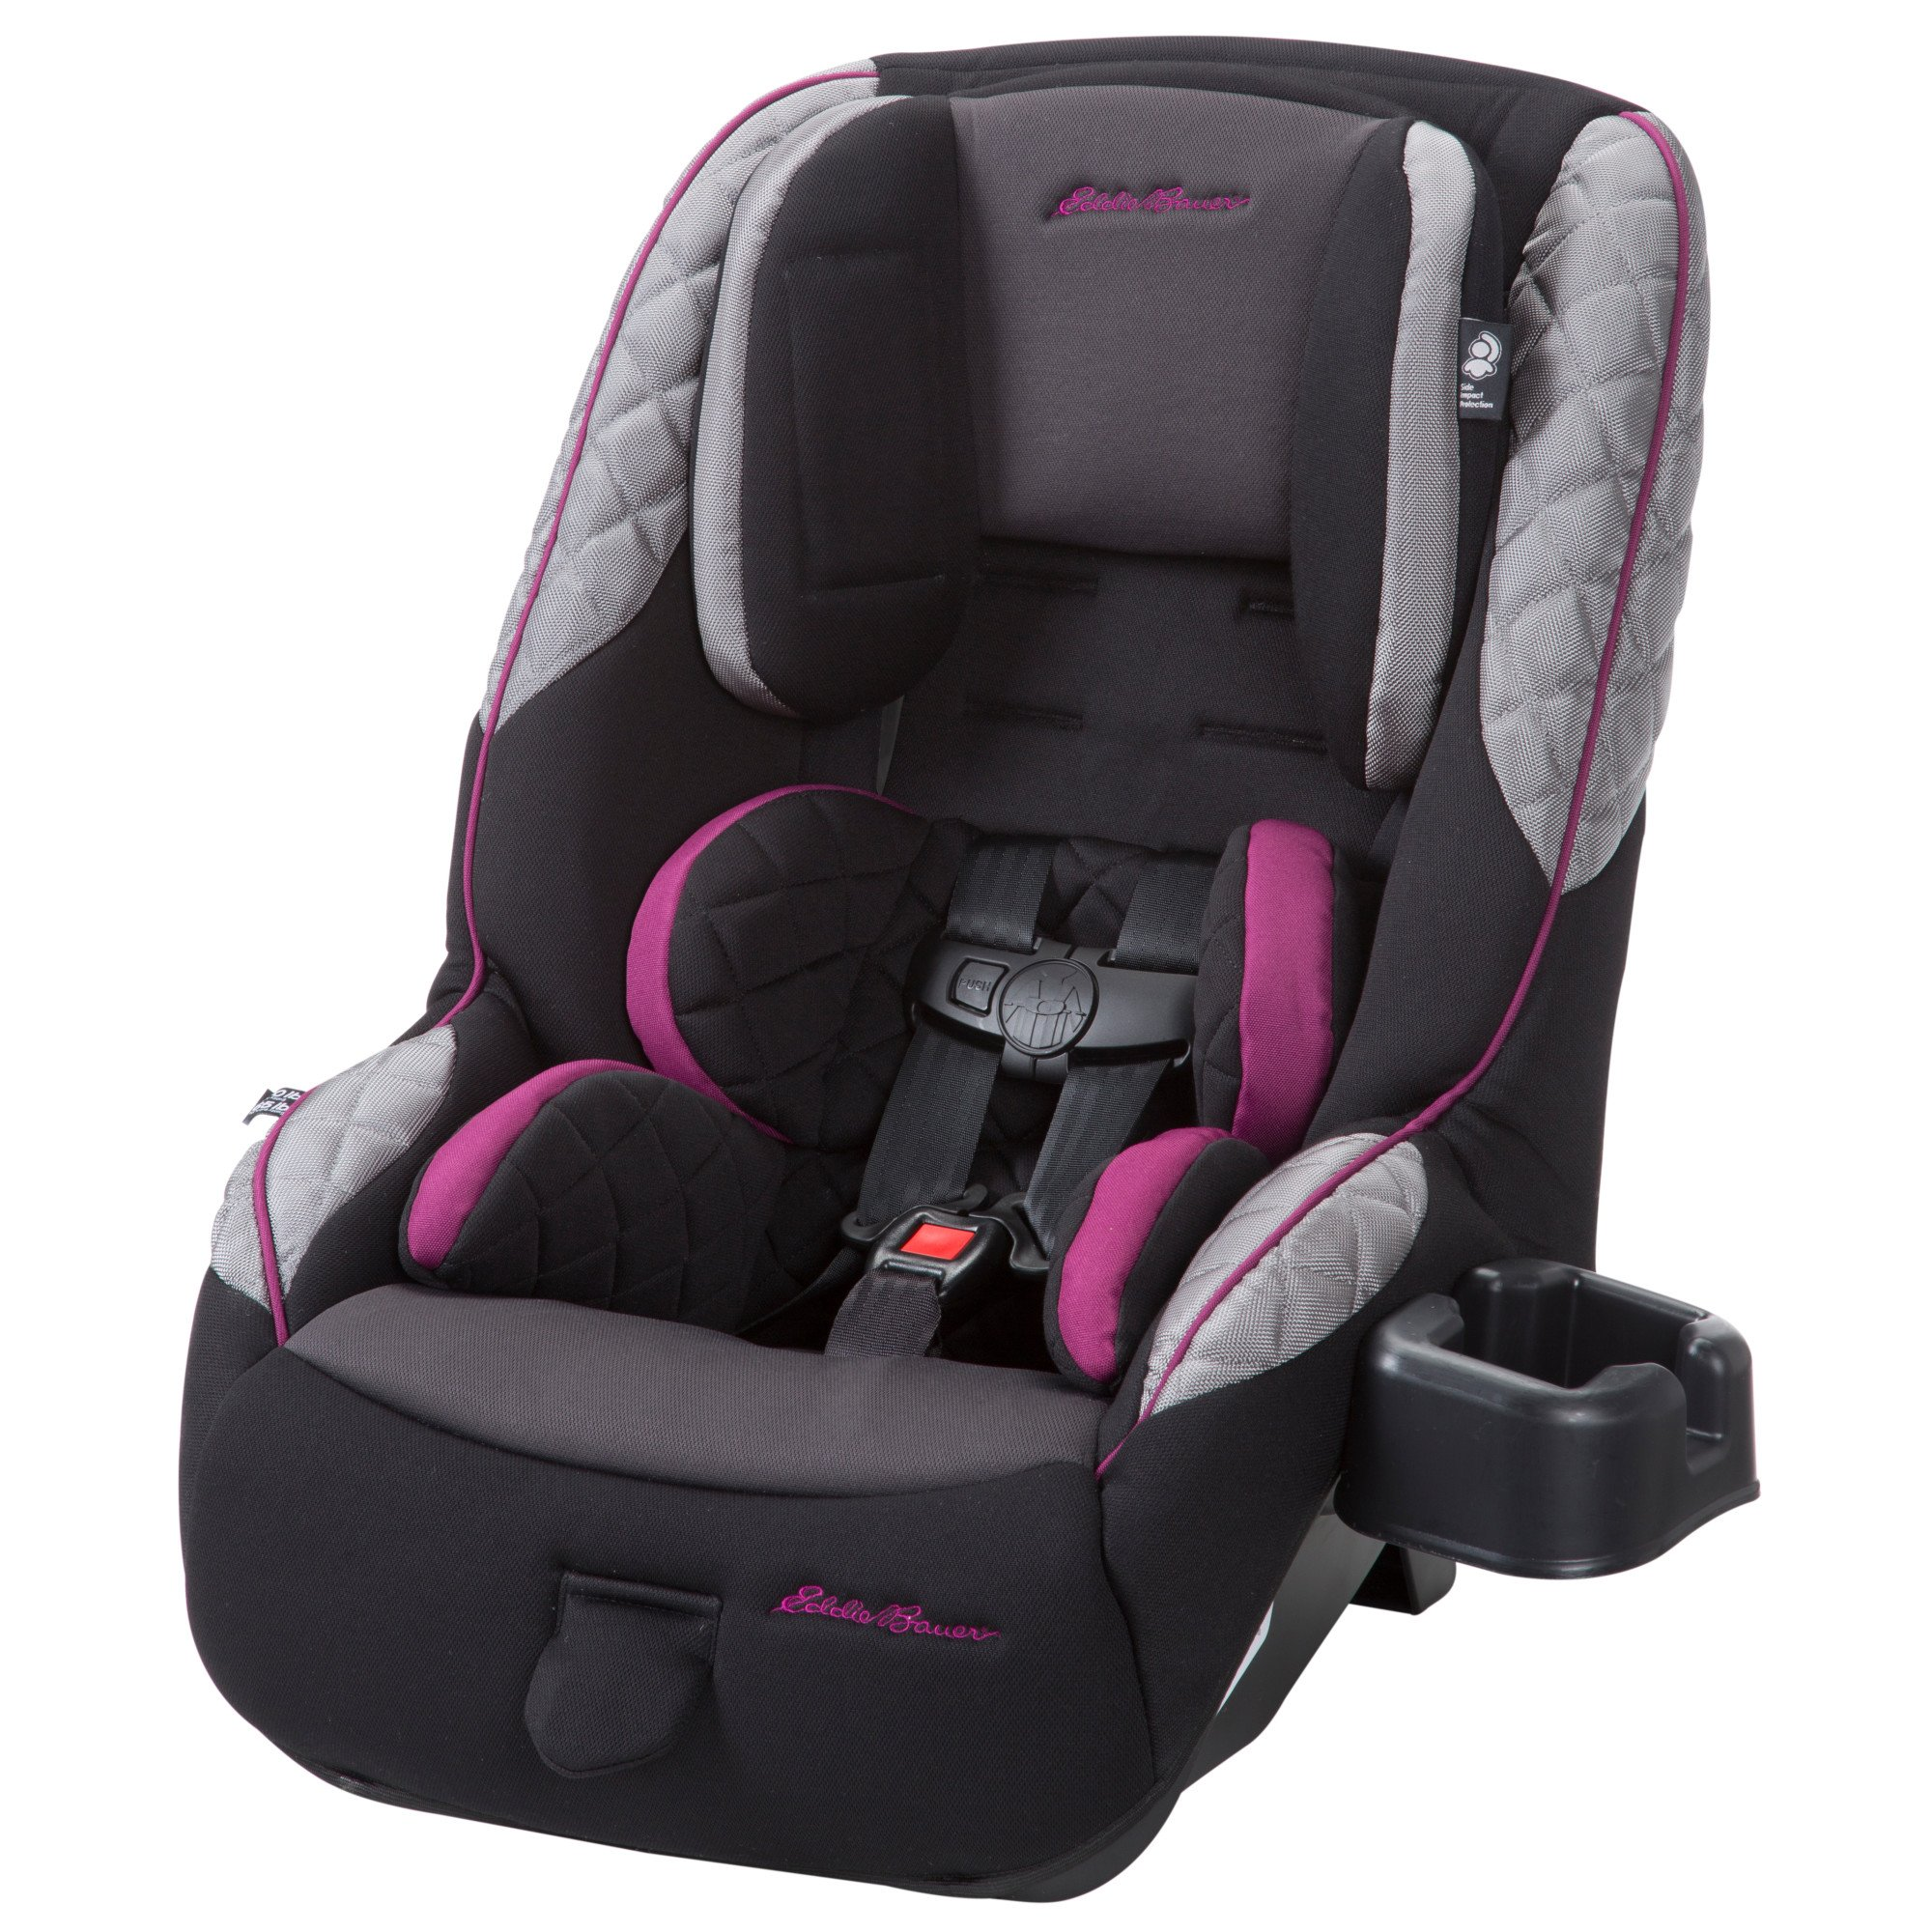 15647bc64ab Get Quotations · Eddie Bauer XRS 65 Convertible Car Seat